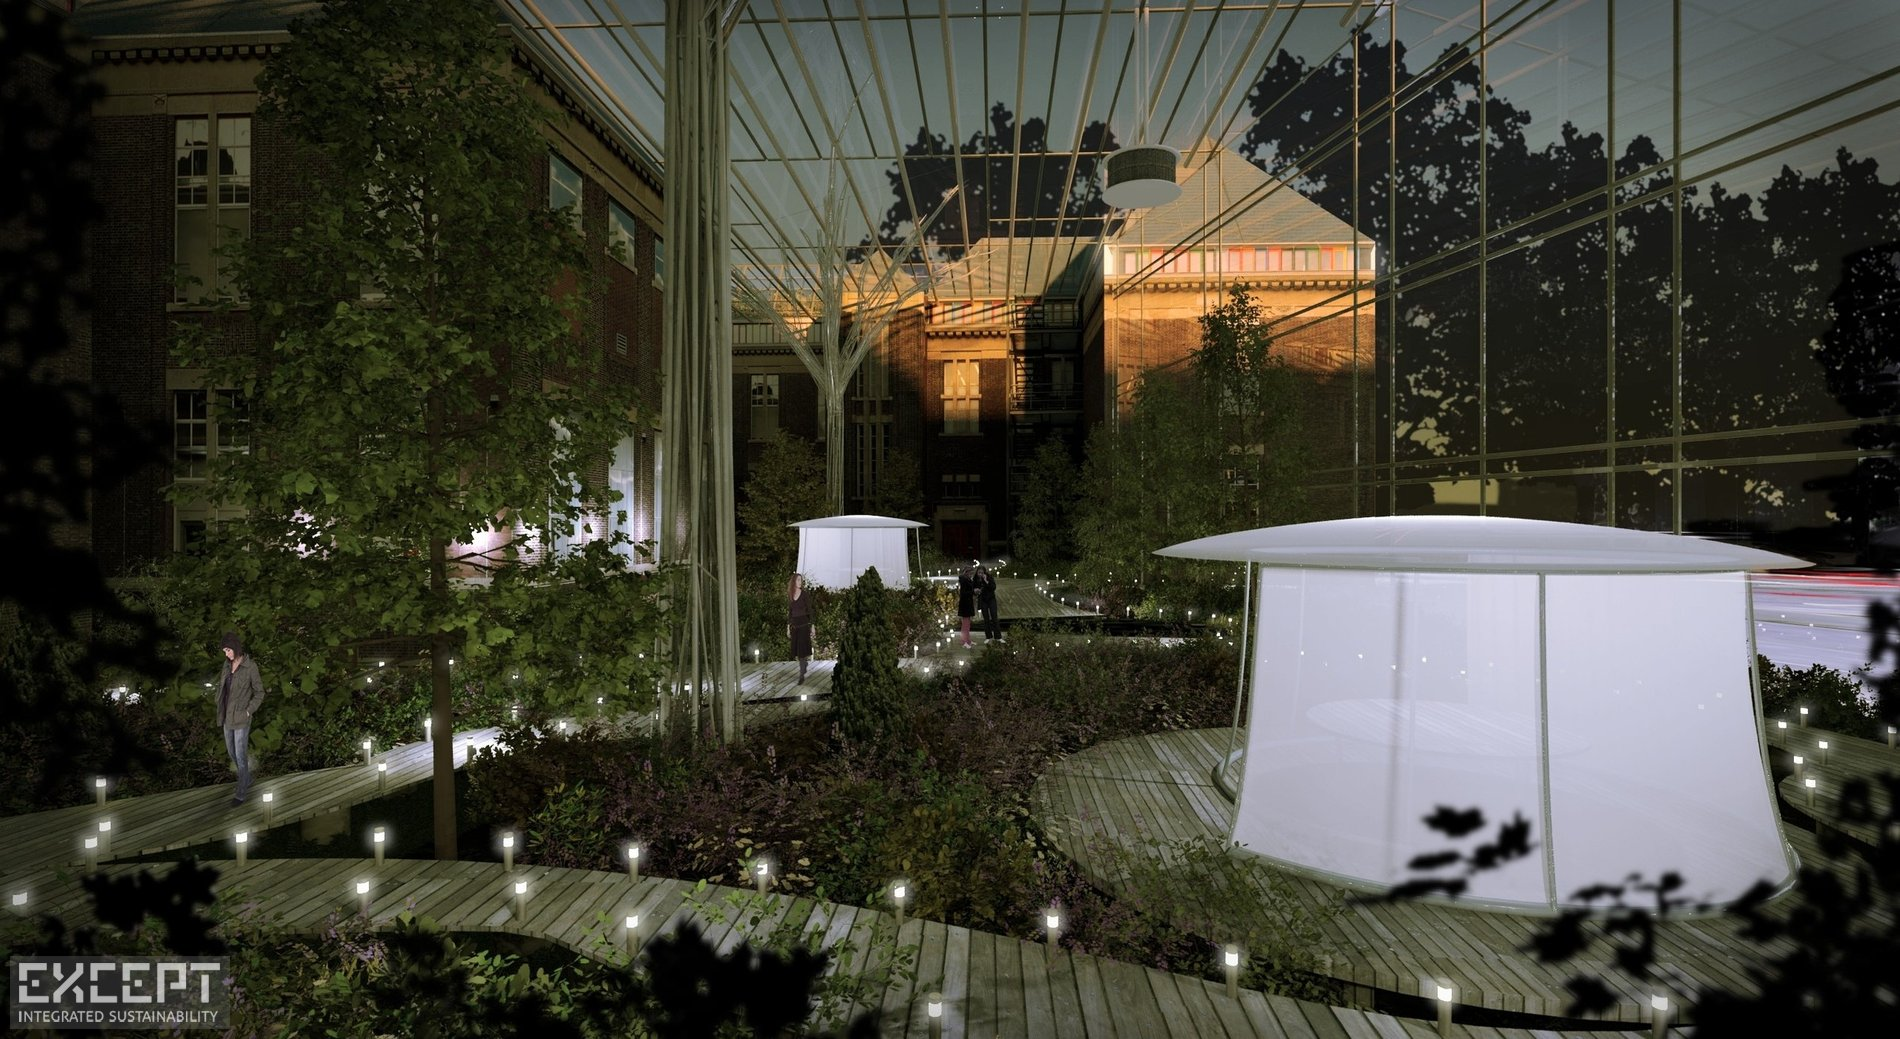 Atrium night - At night the pods are warm bright places in the garden.